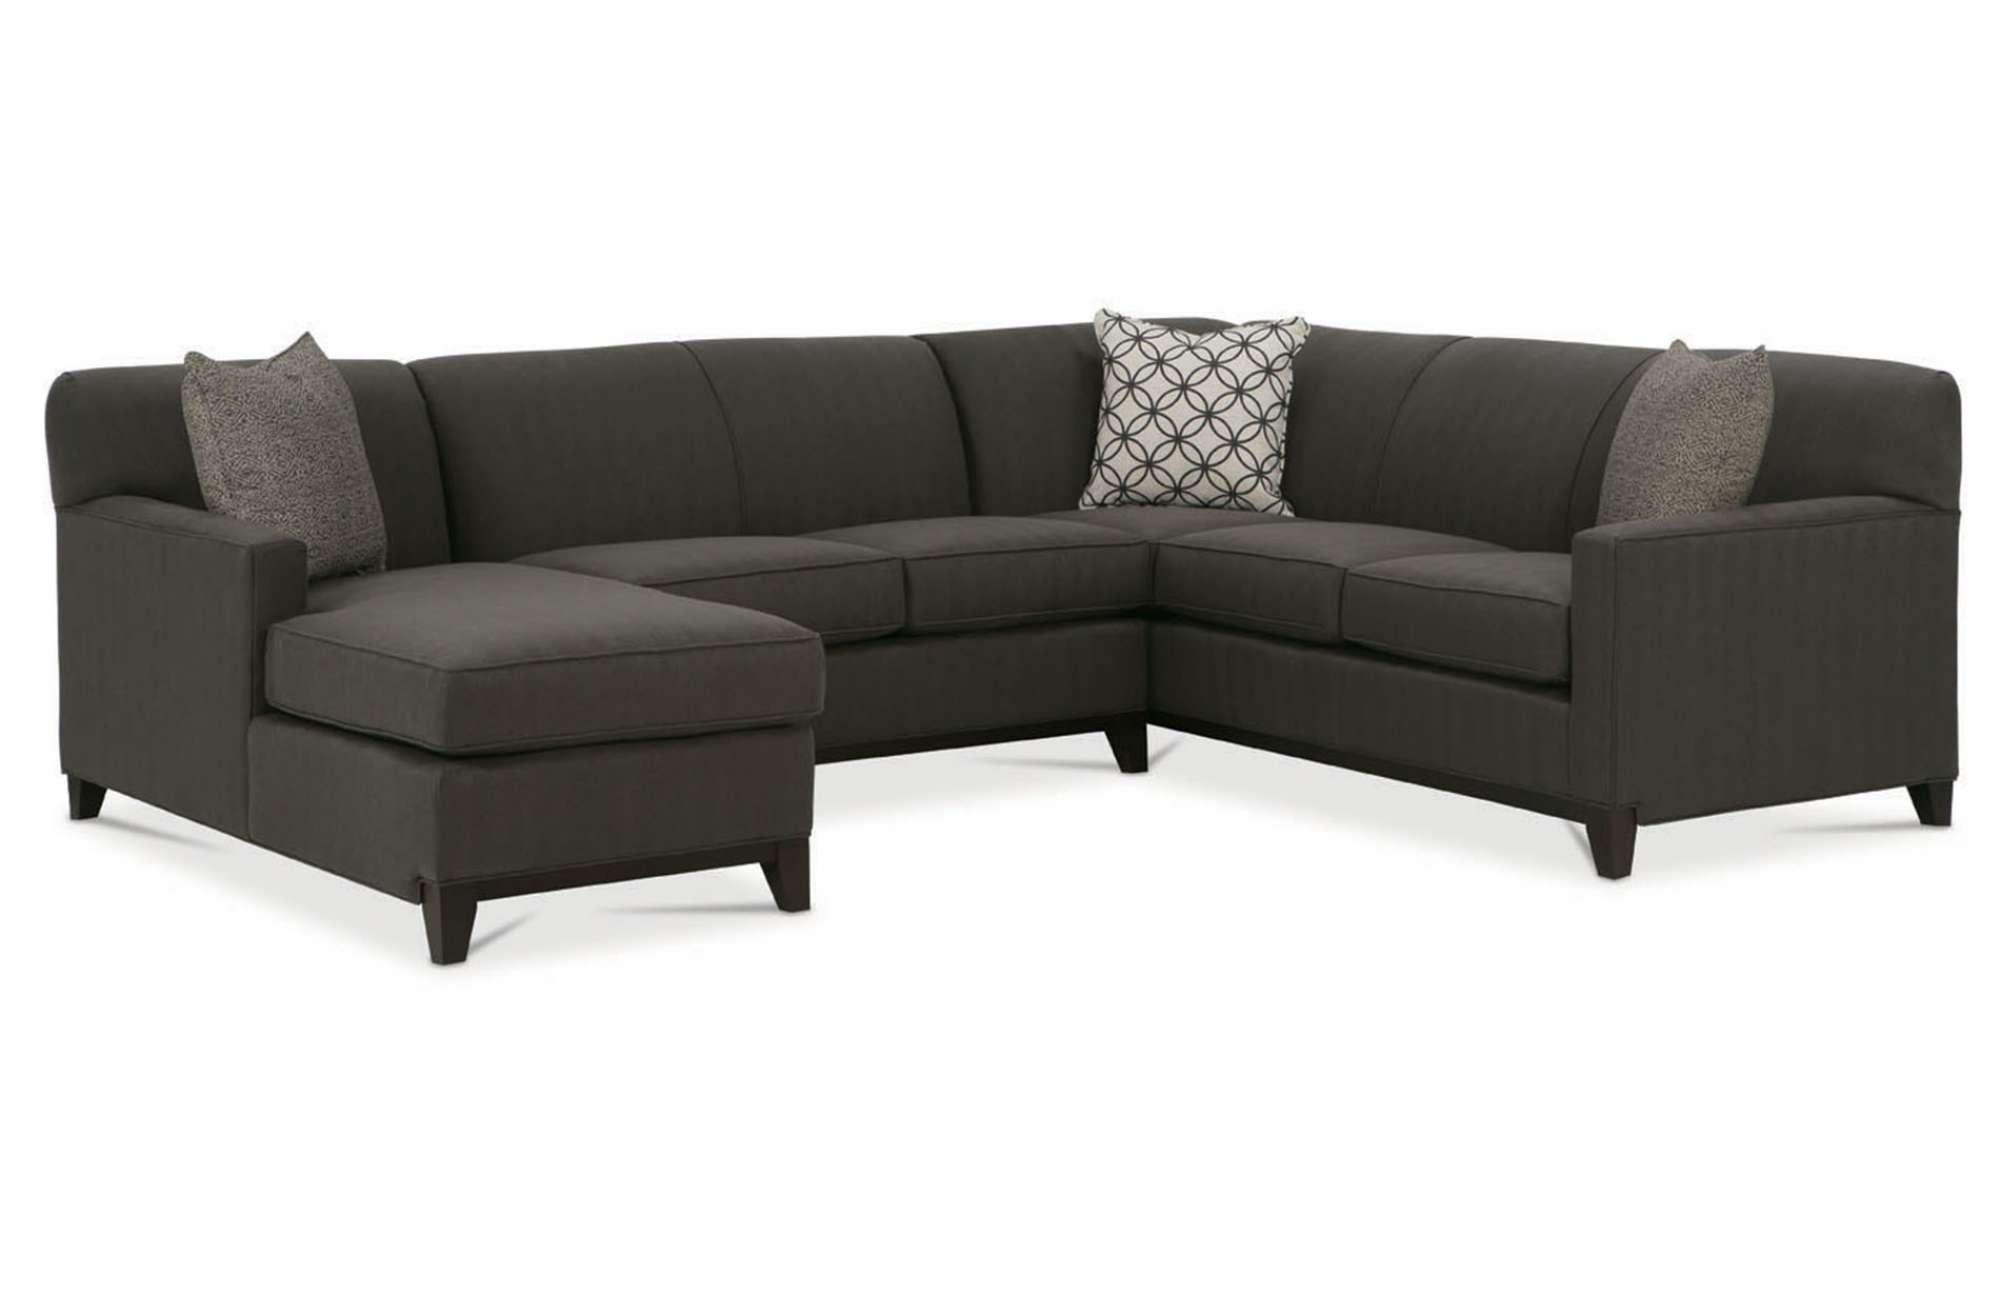 Sectionals | Concepts Furniture – Part 3 Inside Rowe Sectional Sofas (Image 16 of 20)